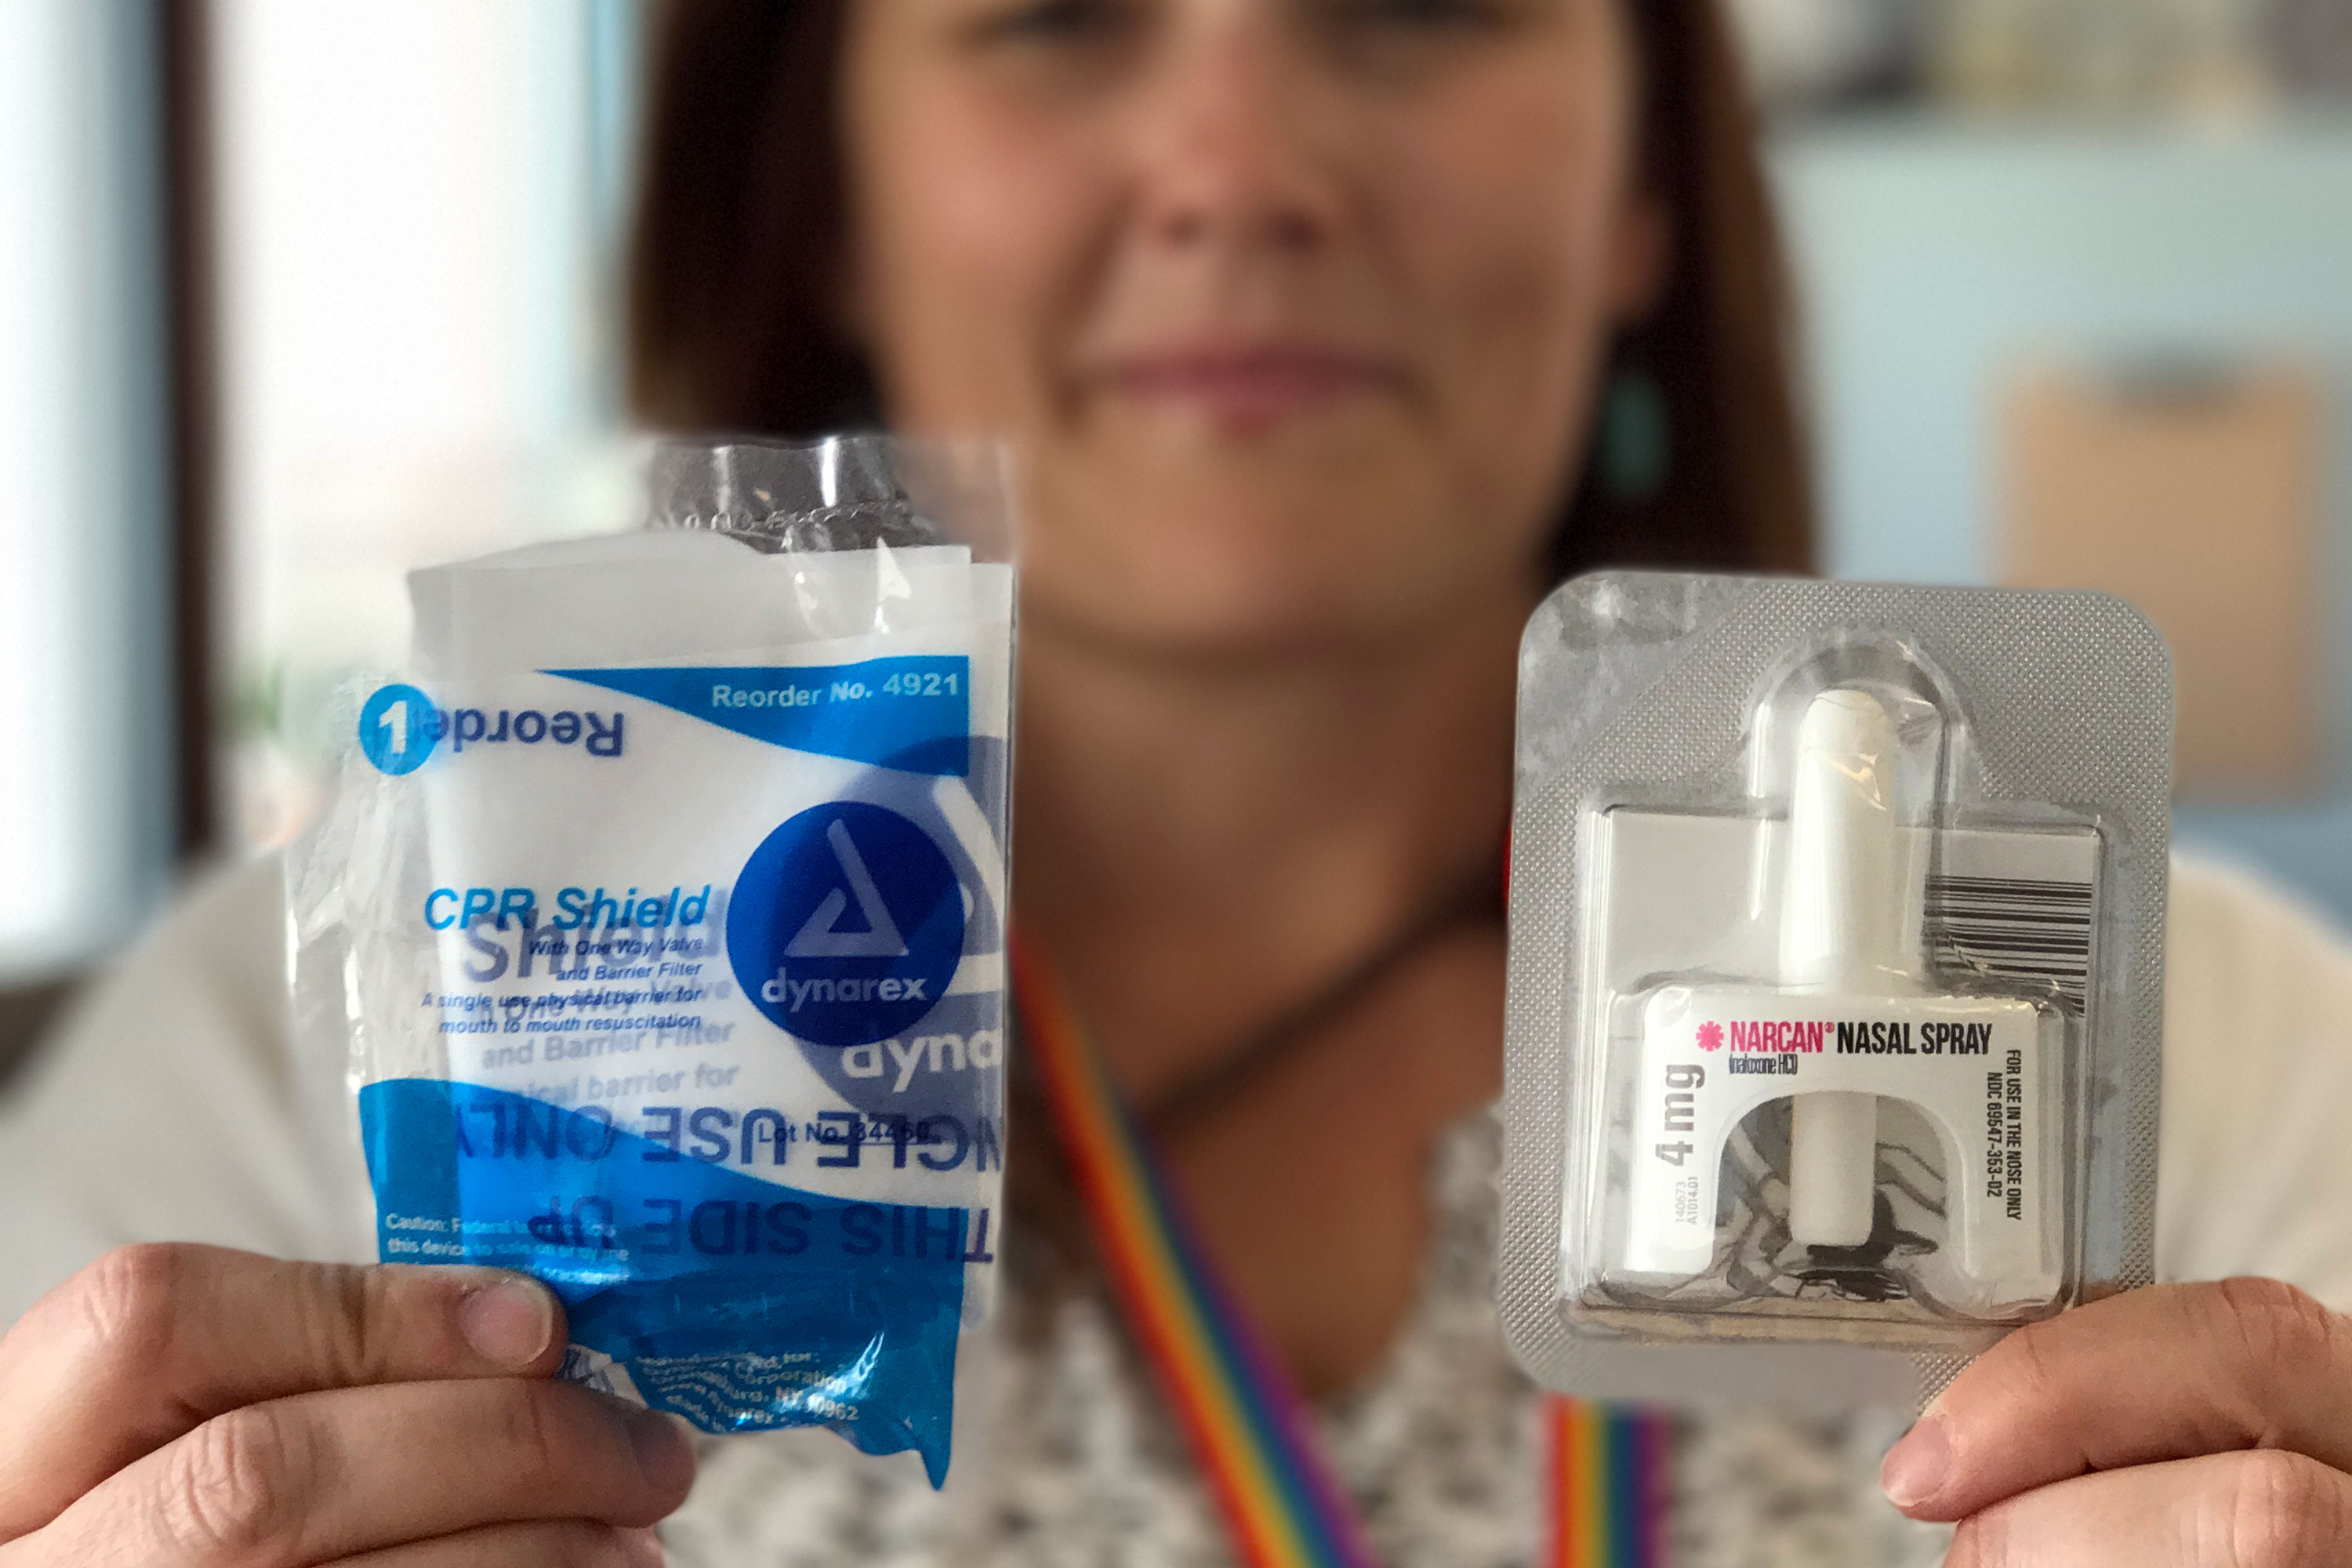 <p>Elissa Hardy, a social worker at the Denver Public Library, holds up a CPR mask and a bottle of Narcan. The medicine is used to reverse an opioid overdose.</p>